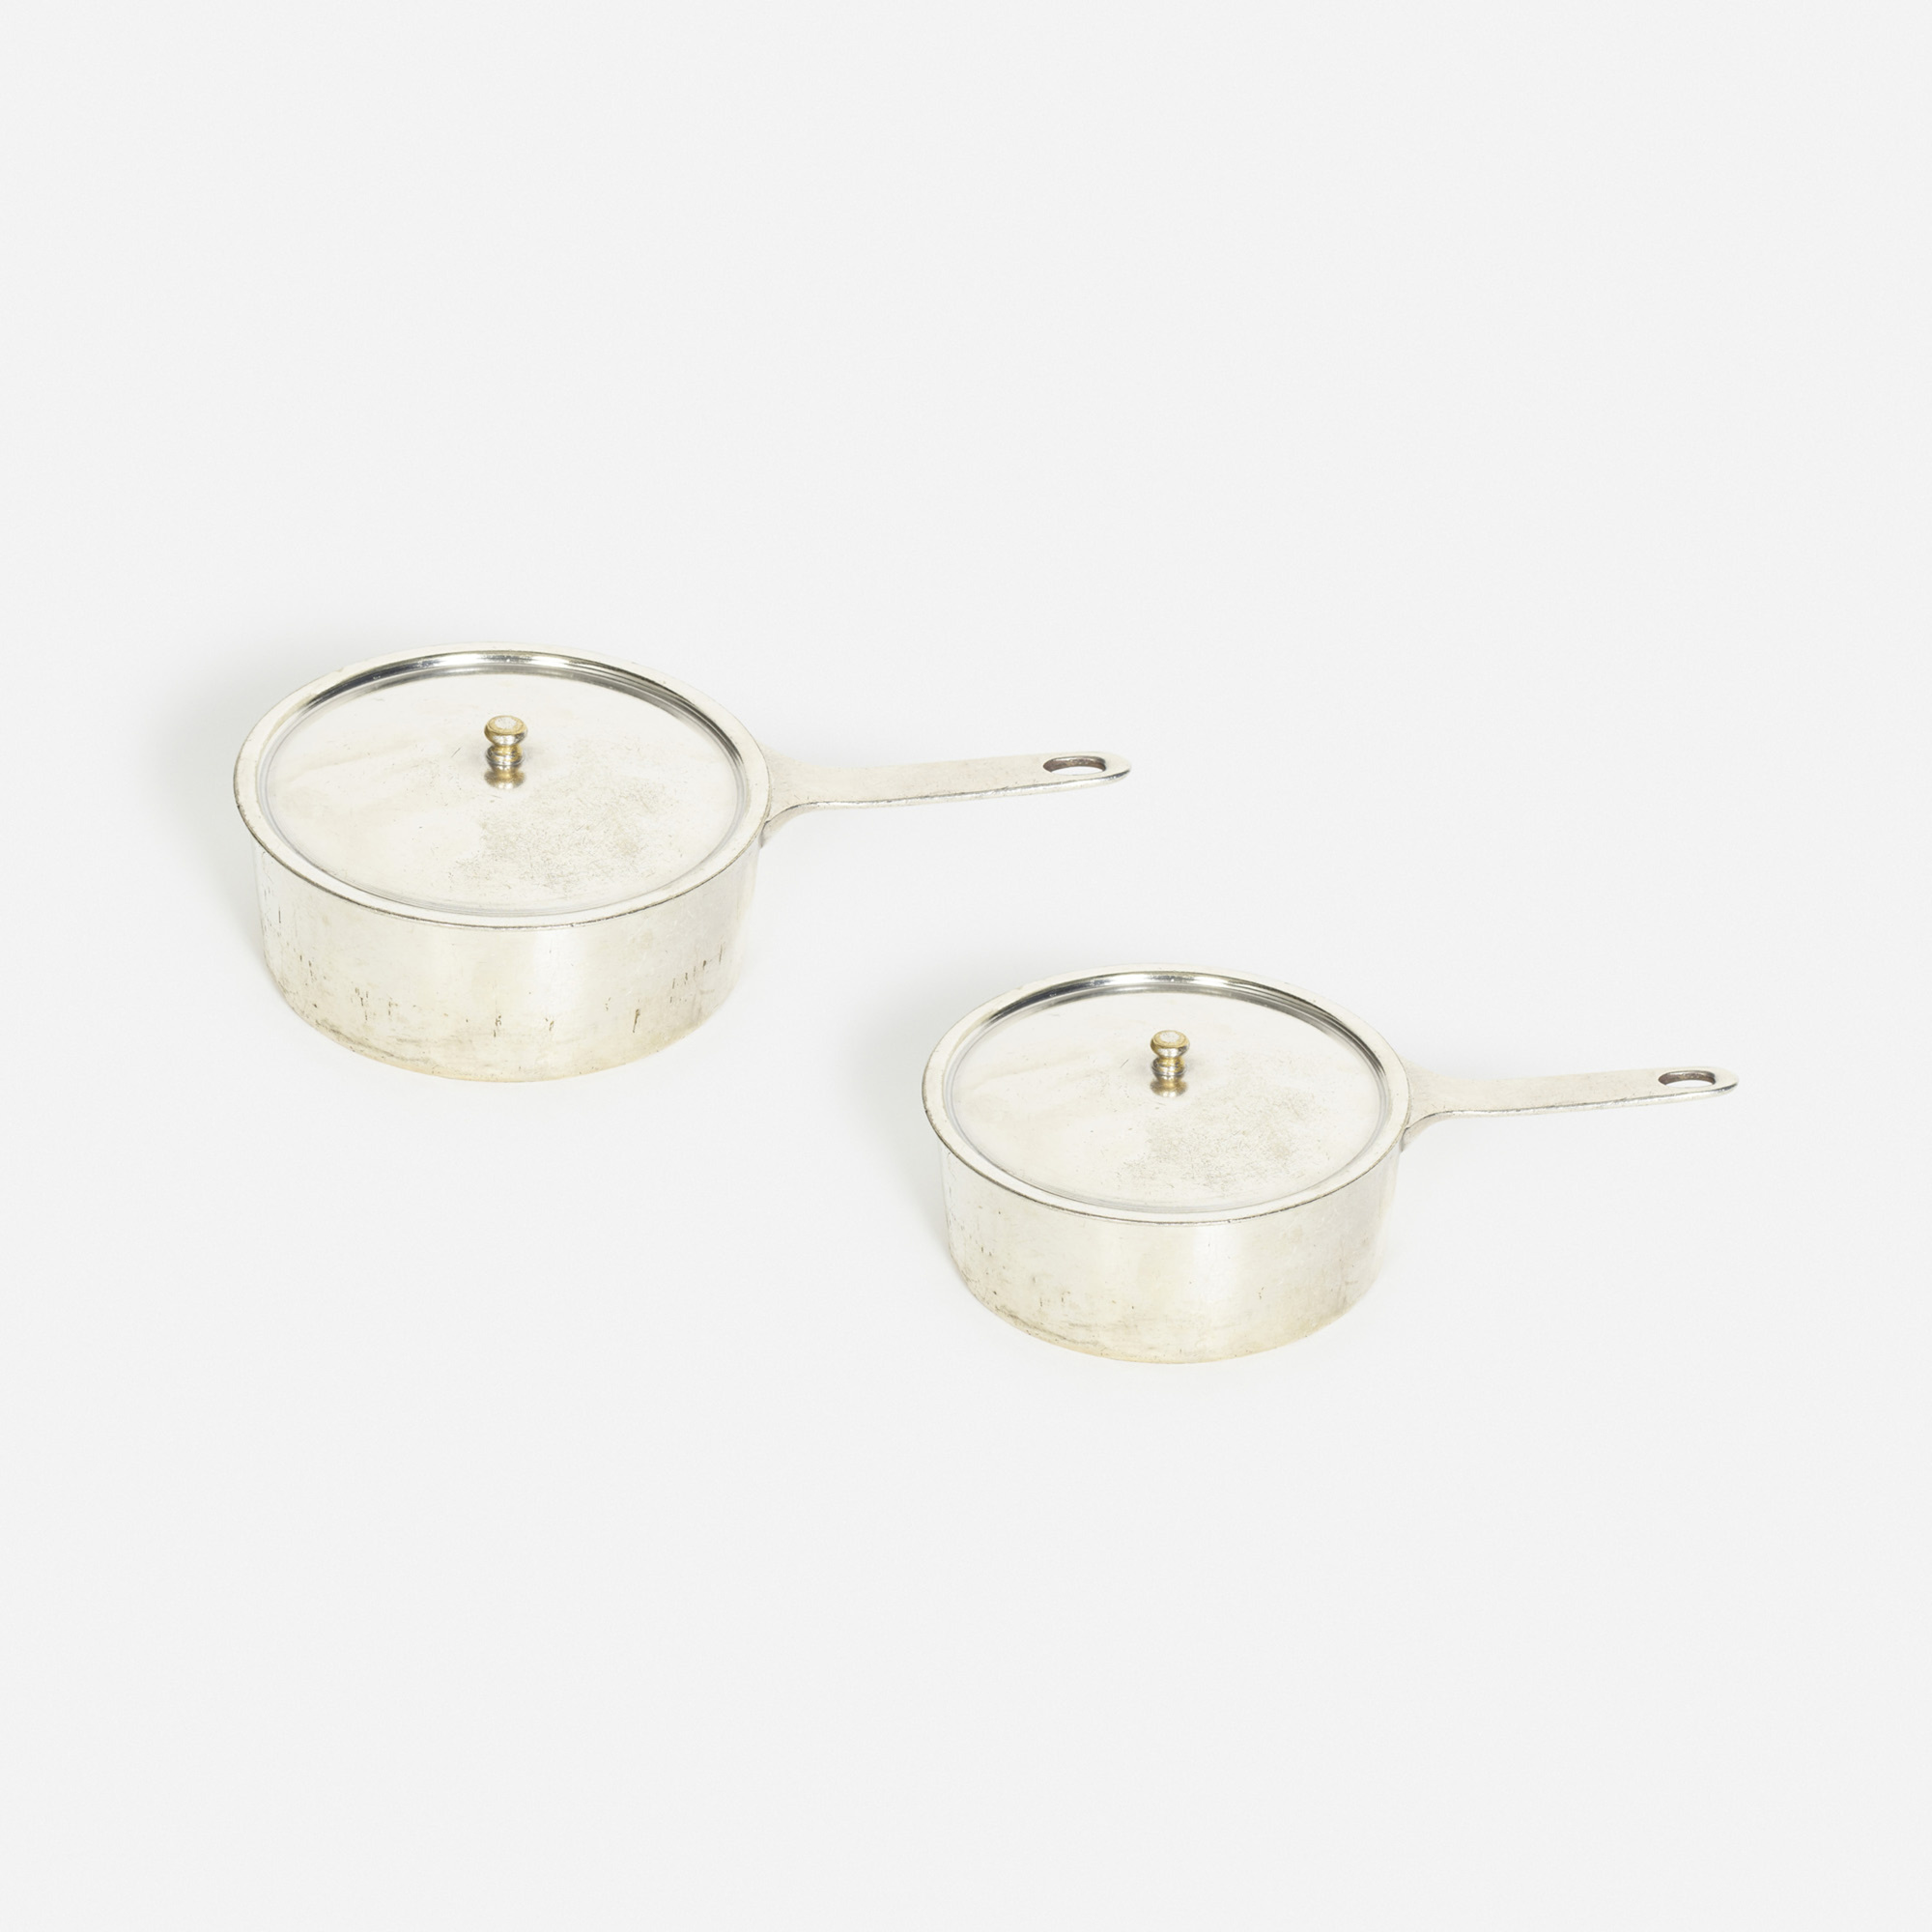 863: Garth and Ada Louise Huxtable / sauce pots from the kitchen of The Four Seasons, set of two (1 of 1)